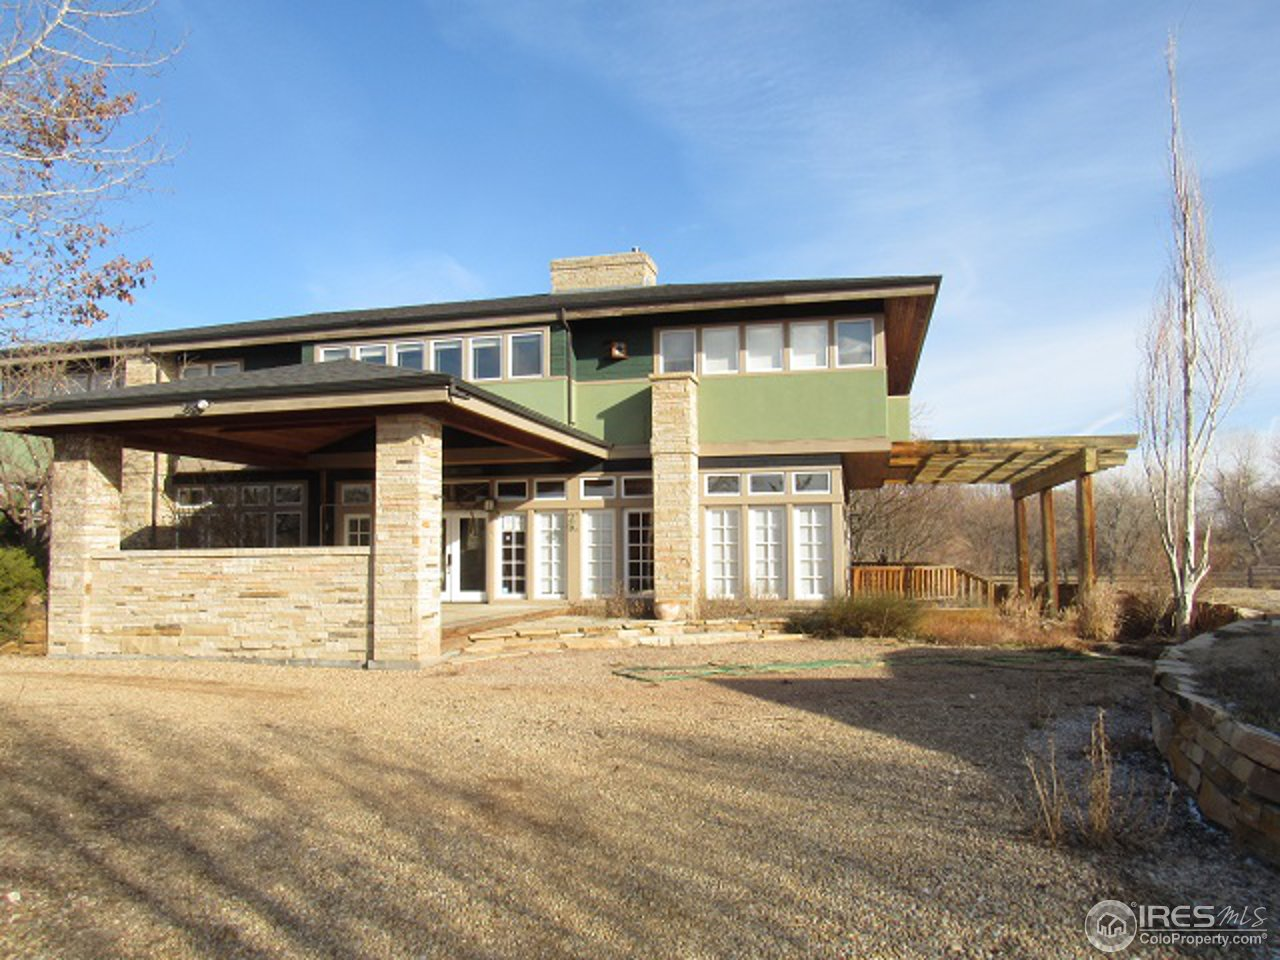 13264 N 75th St, Longmont, CO 80503